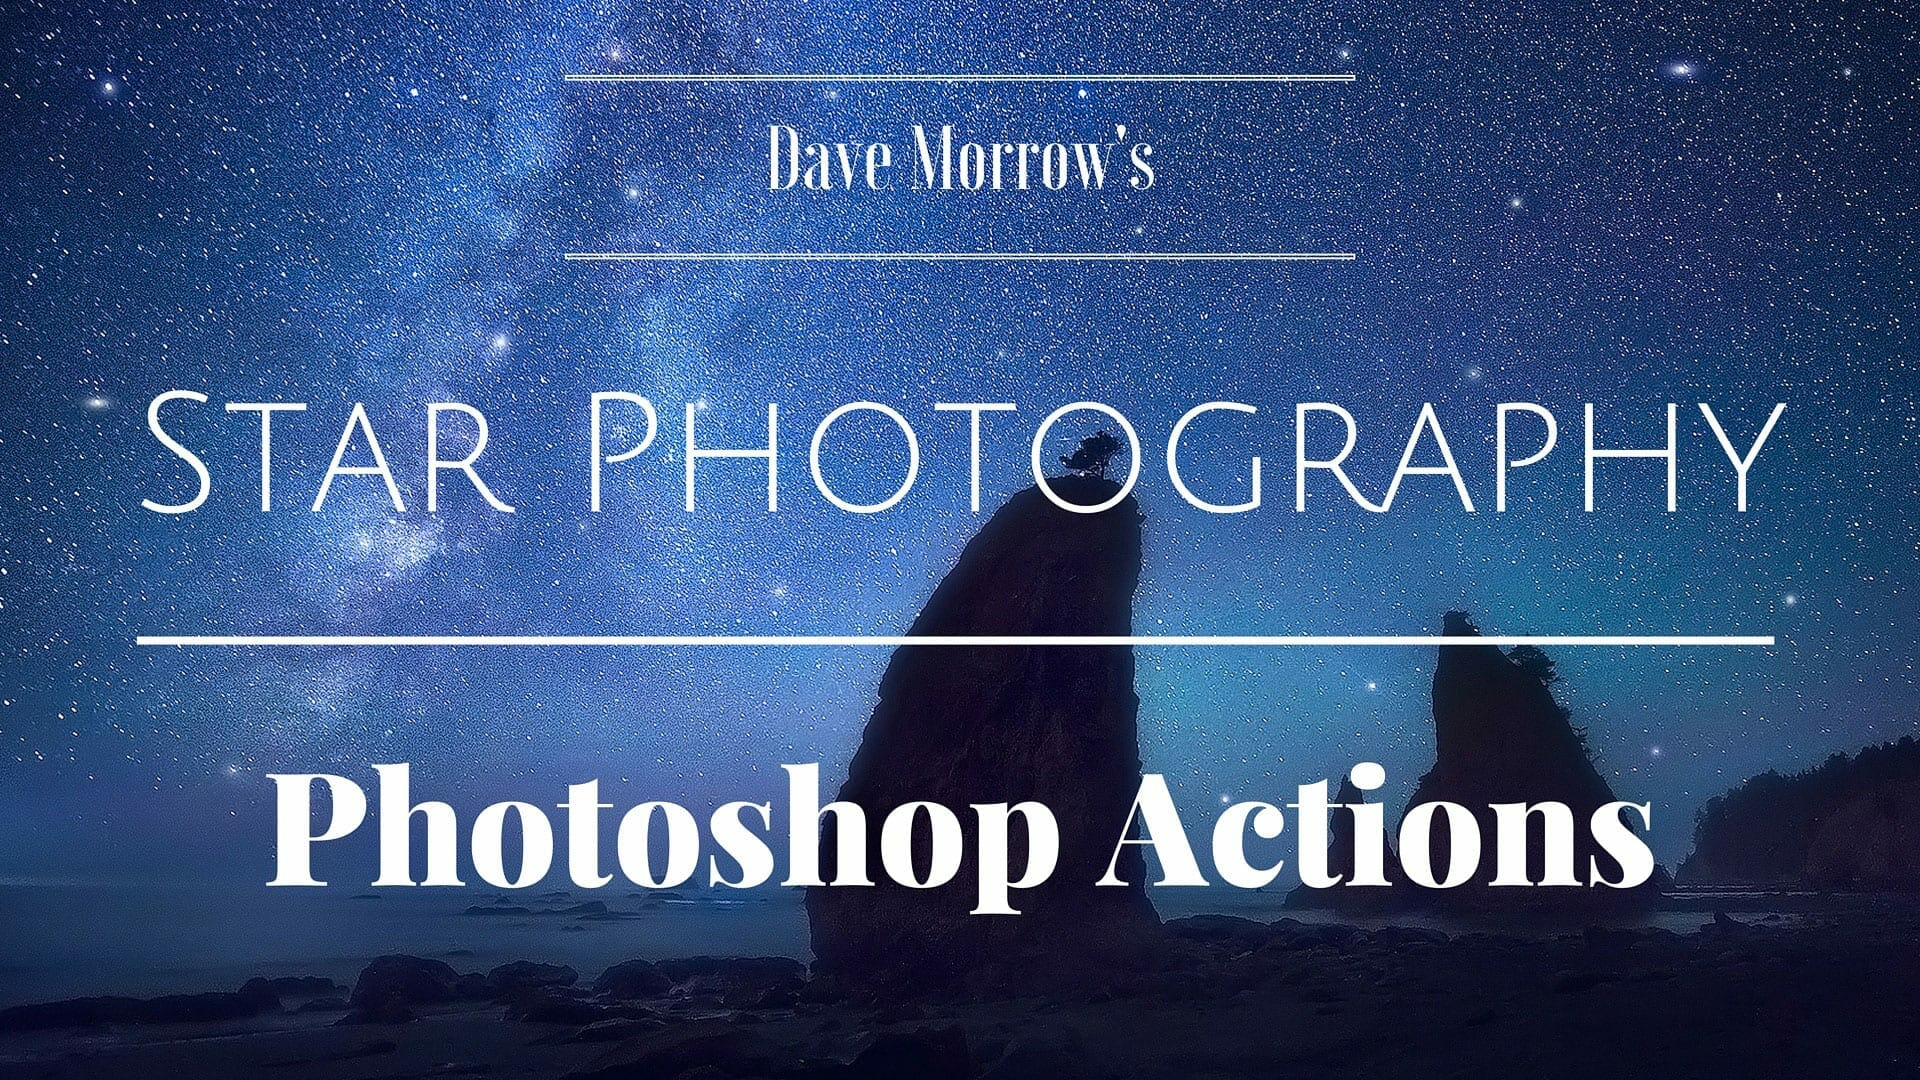 Learn To Edit Your Night Sky Photos From Start To Finish With Dave Morrow's  Star Photography Photoshop Actions & Bonus Video Tutorial